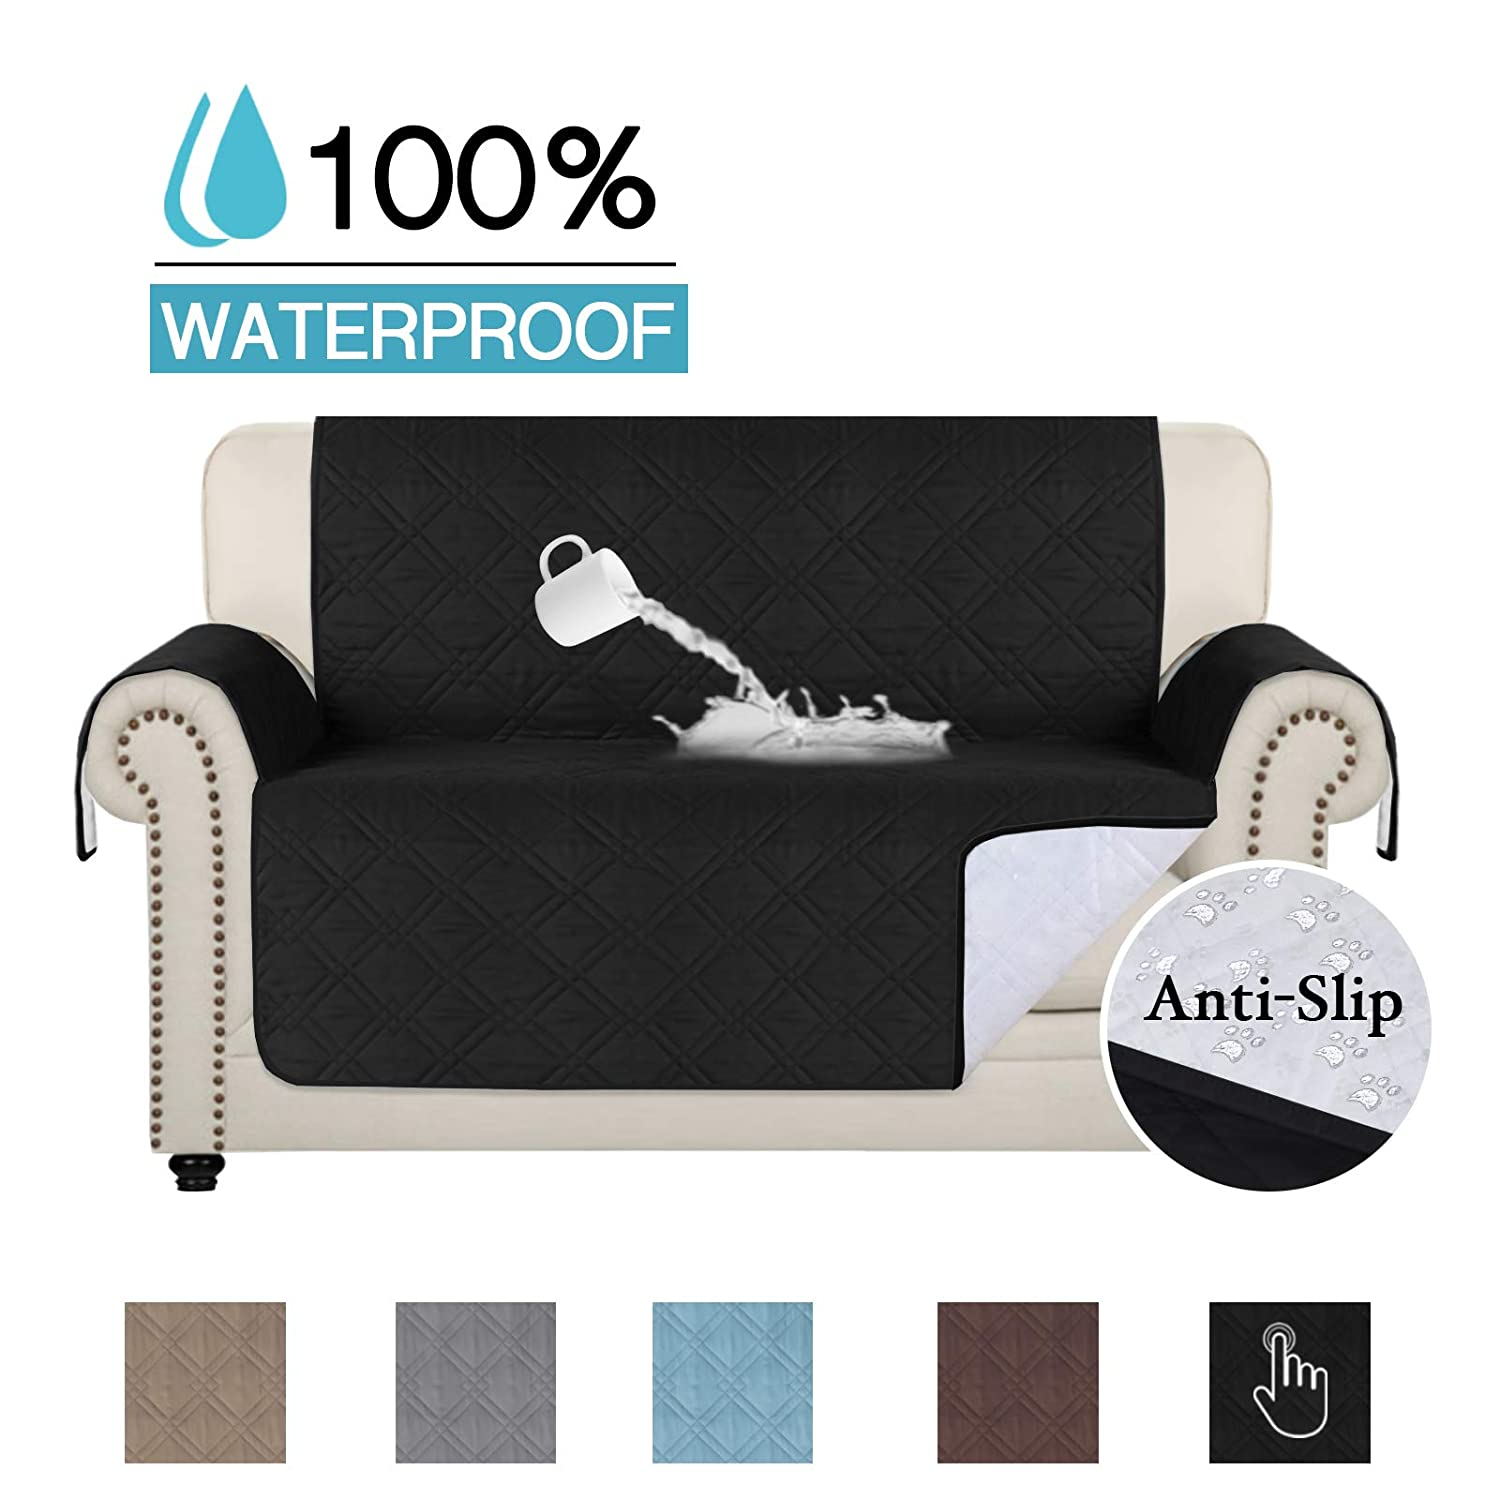 100% Waterproof Chair Cover for Living Room Sofa Slipcover Sofa Cover Furniture Protector